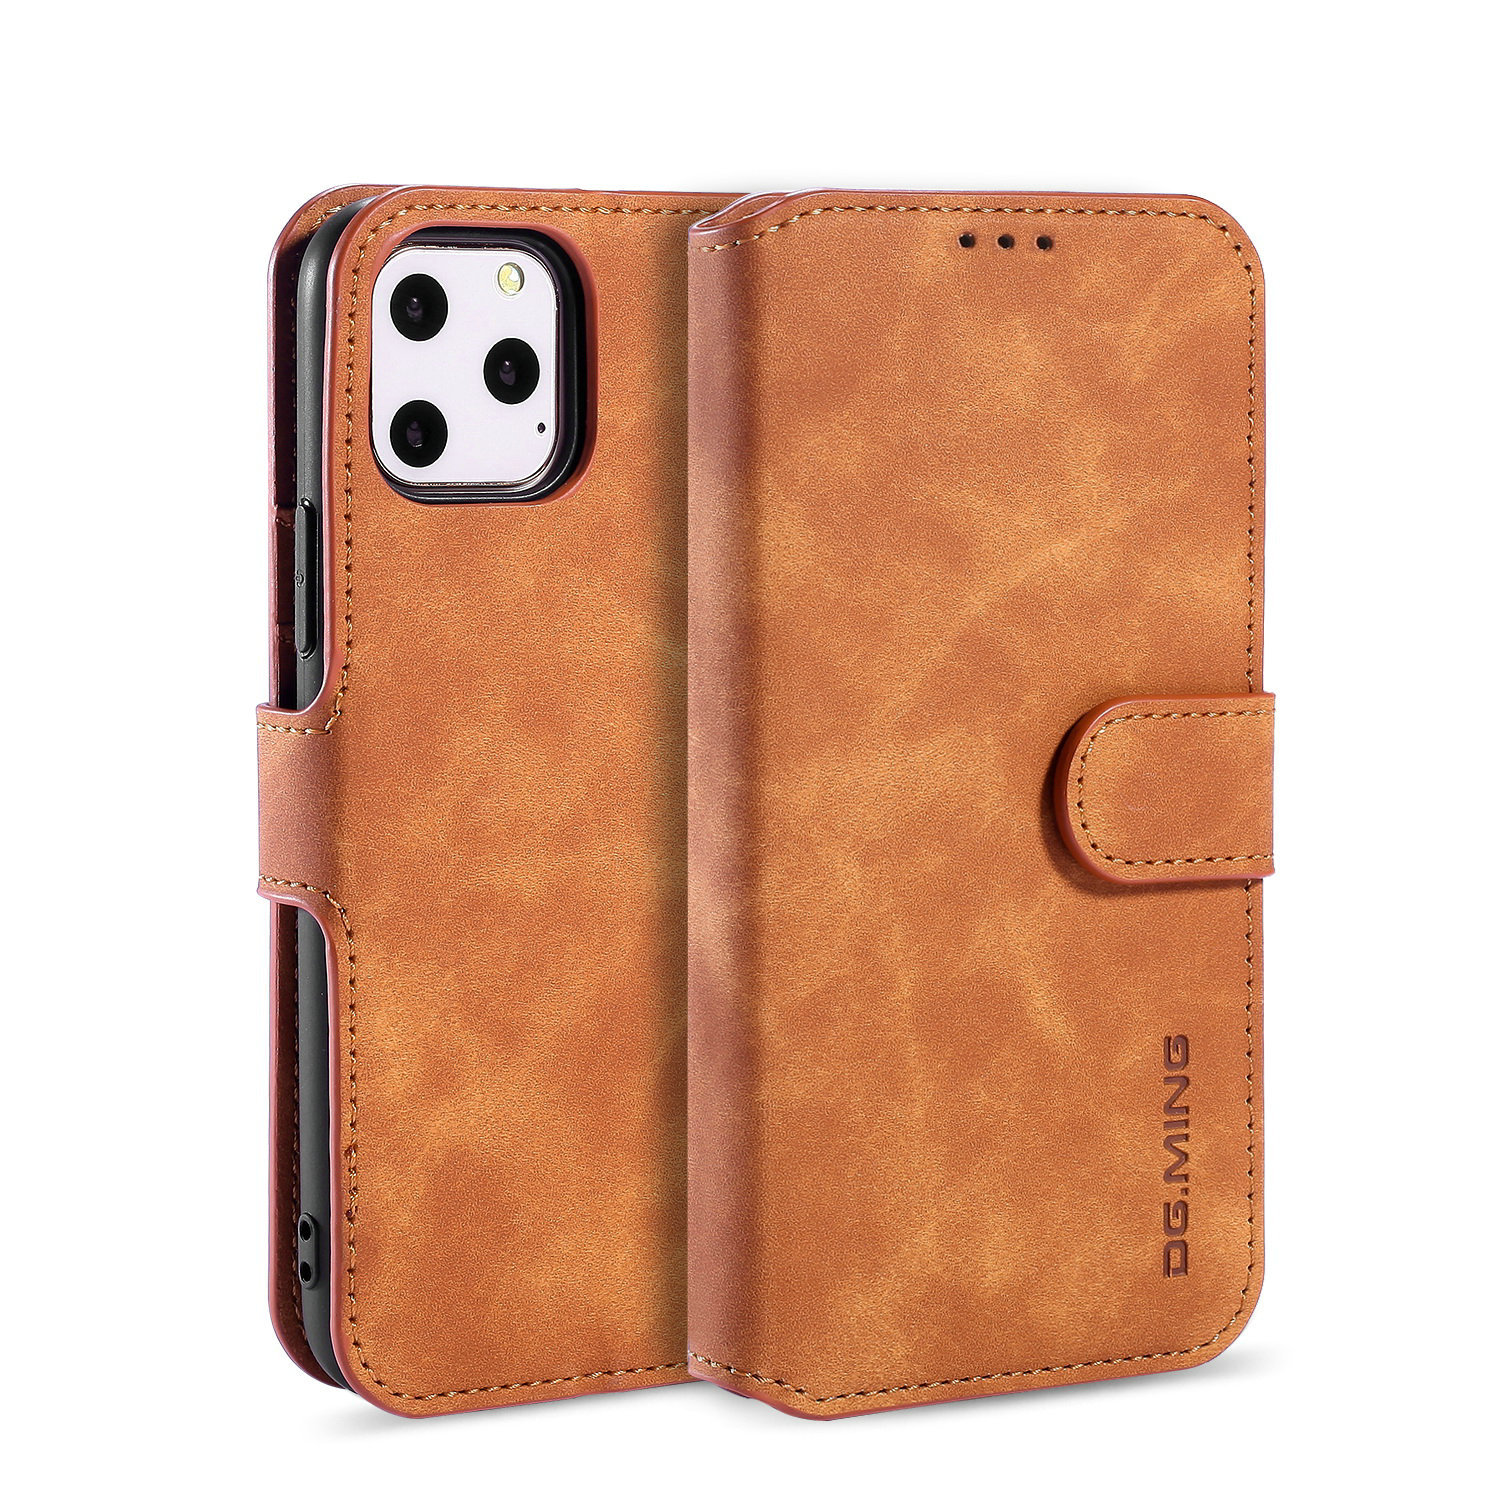 DG.MING is suitable for iPhone12 mobile phone leather case iP11 Pro XSMax mobile phone case SE 2020